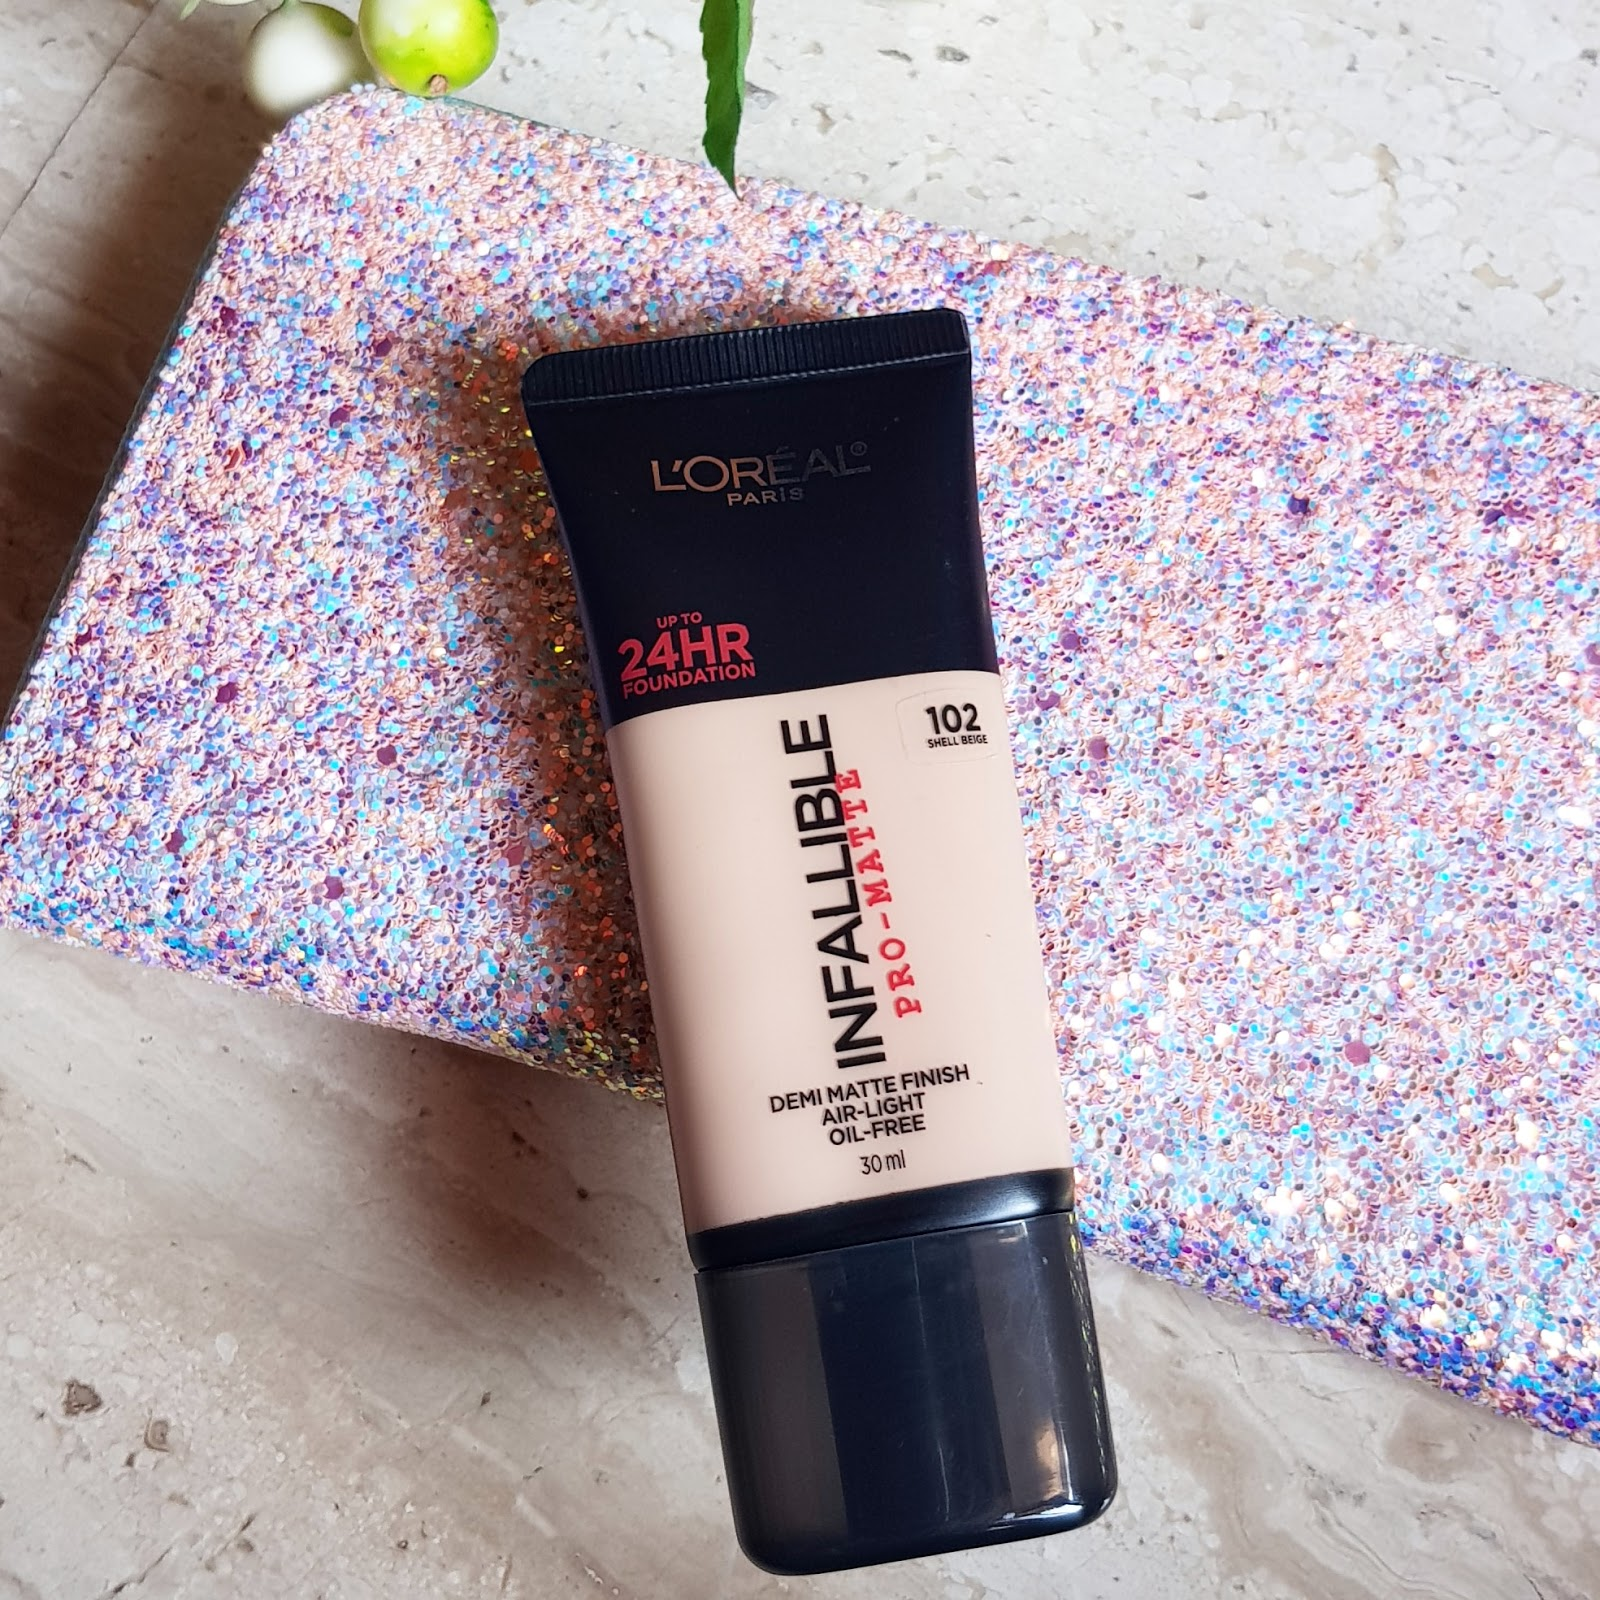 Ridzi Makeup Loreal Infallible Pro Matte Foundation Review 24hr